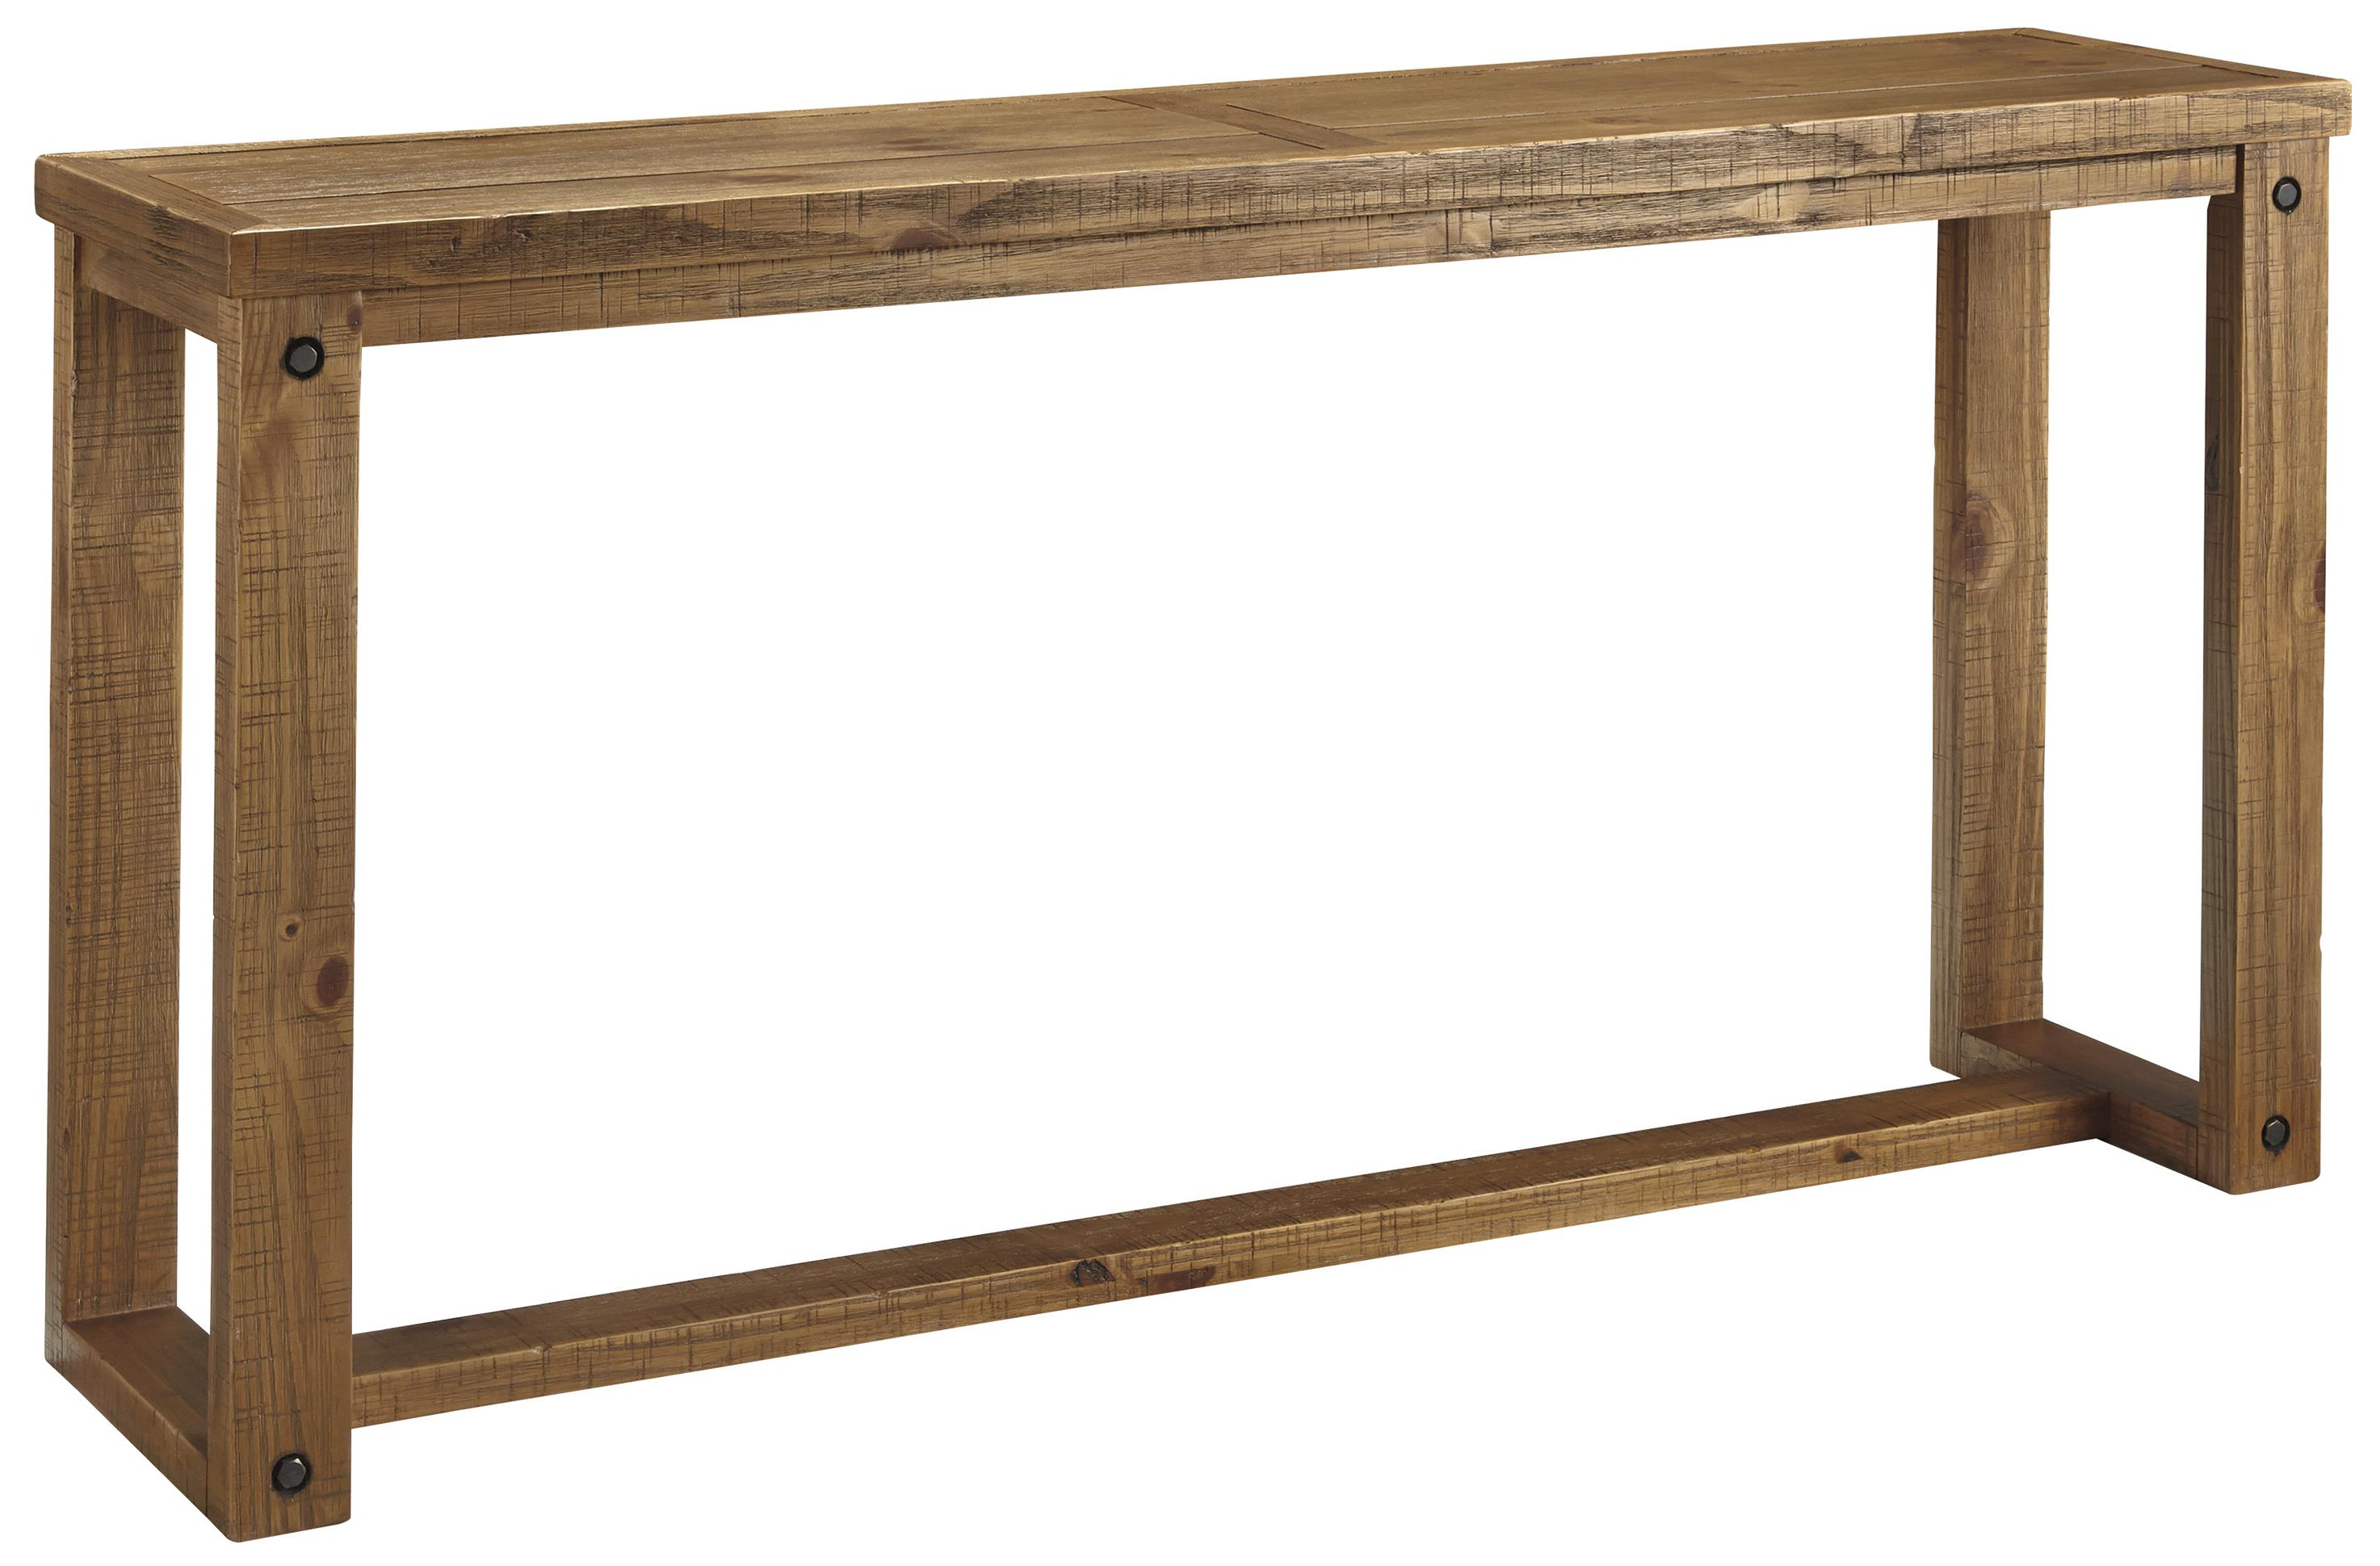 Signature Design by Ashley Tamilo Sofa Table - Item Number: T715-4